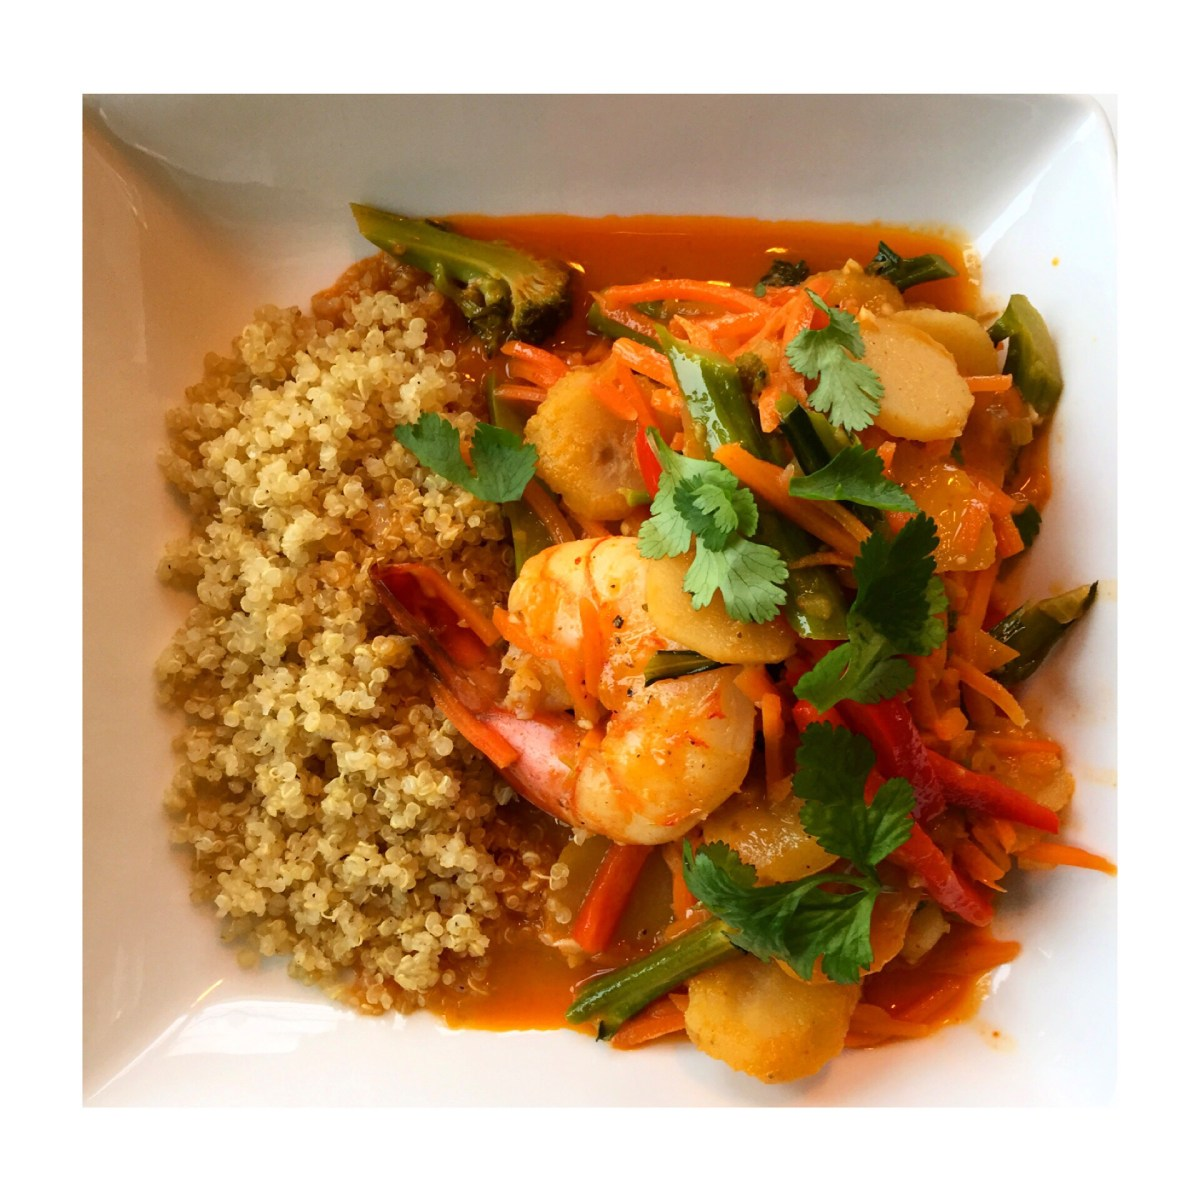 Emeril Lagasse's Thai Curry